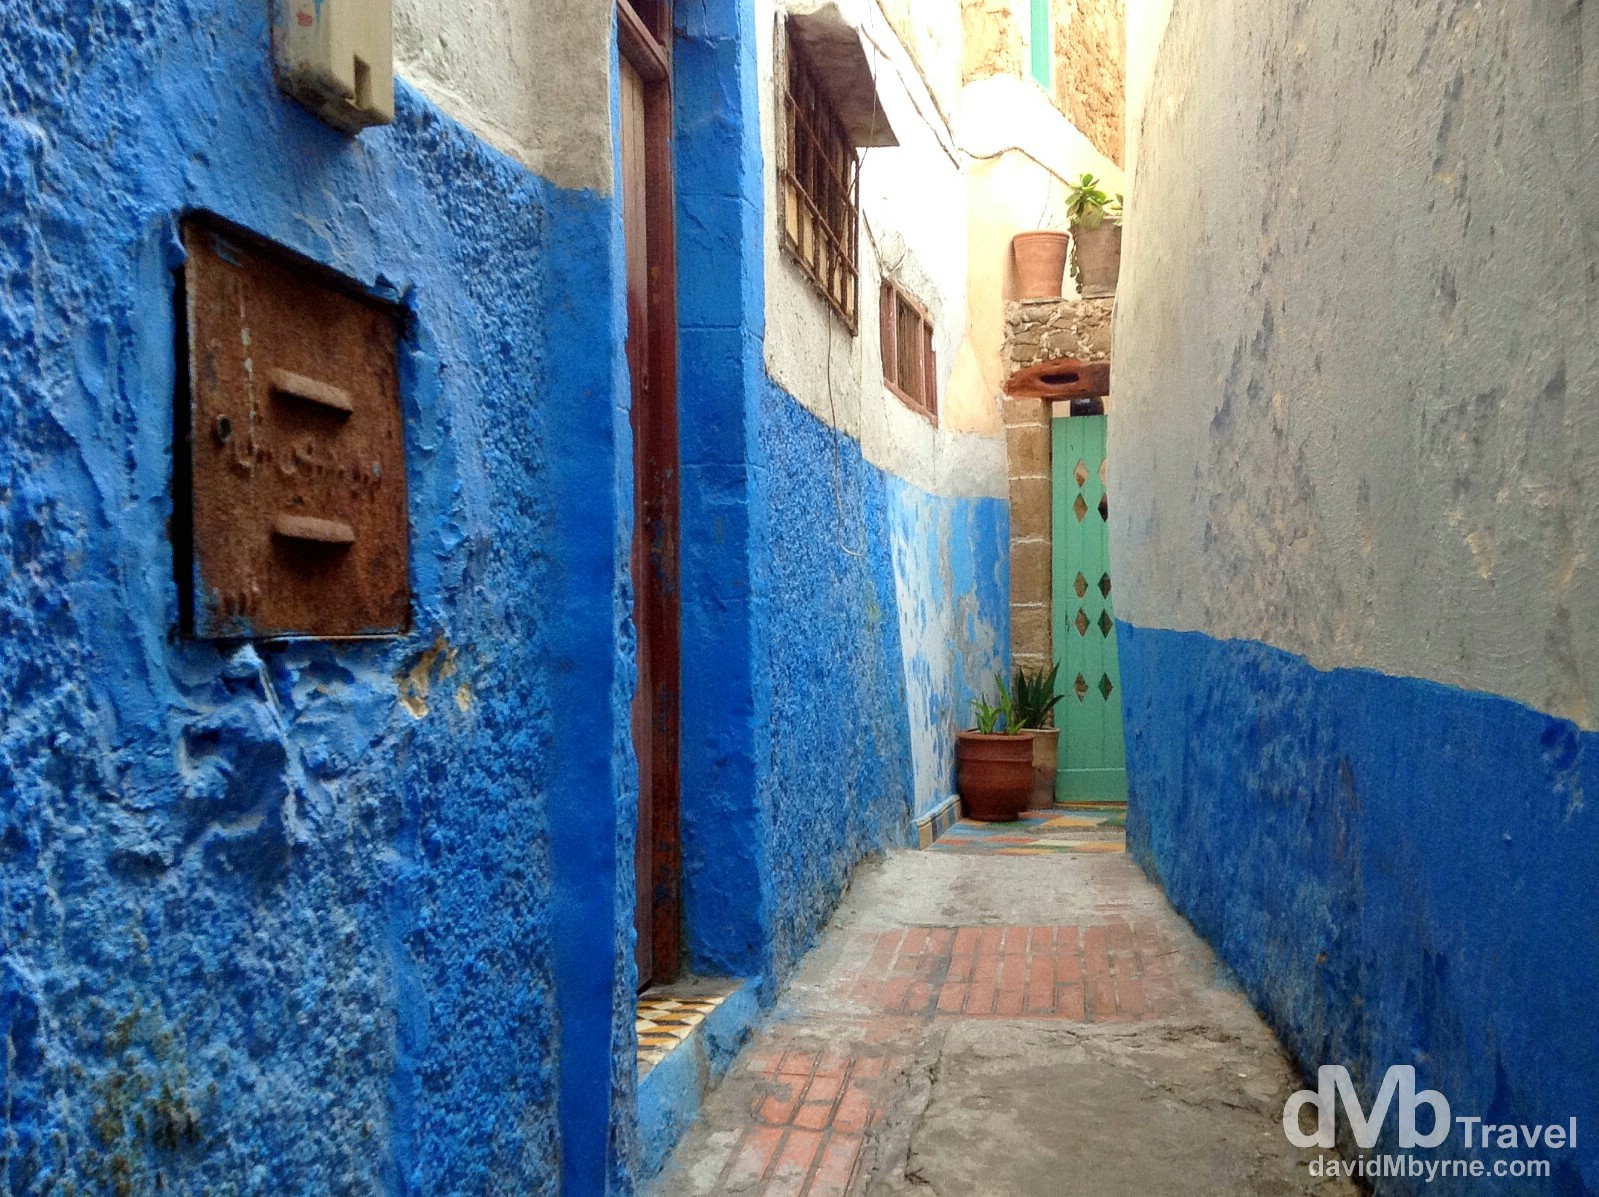 Tight residential lane in the medina of Essaouira, Morocco. May 2nd, 2014.